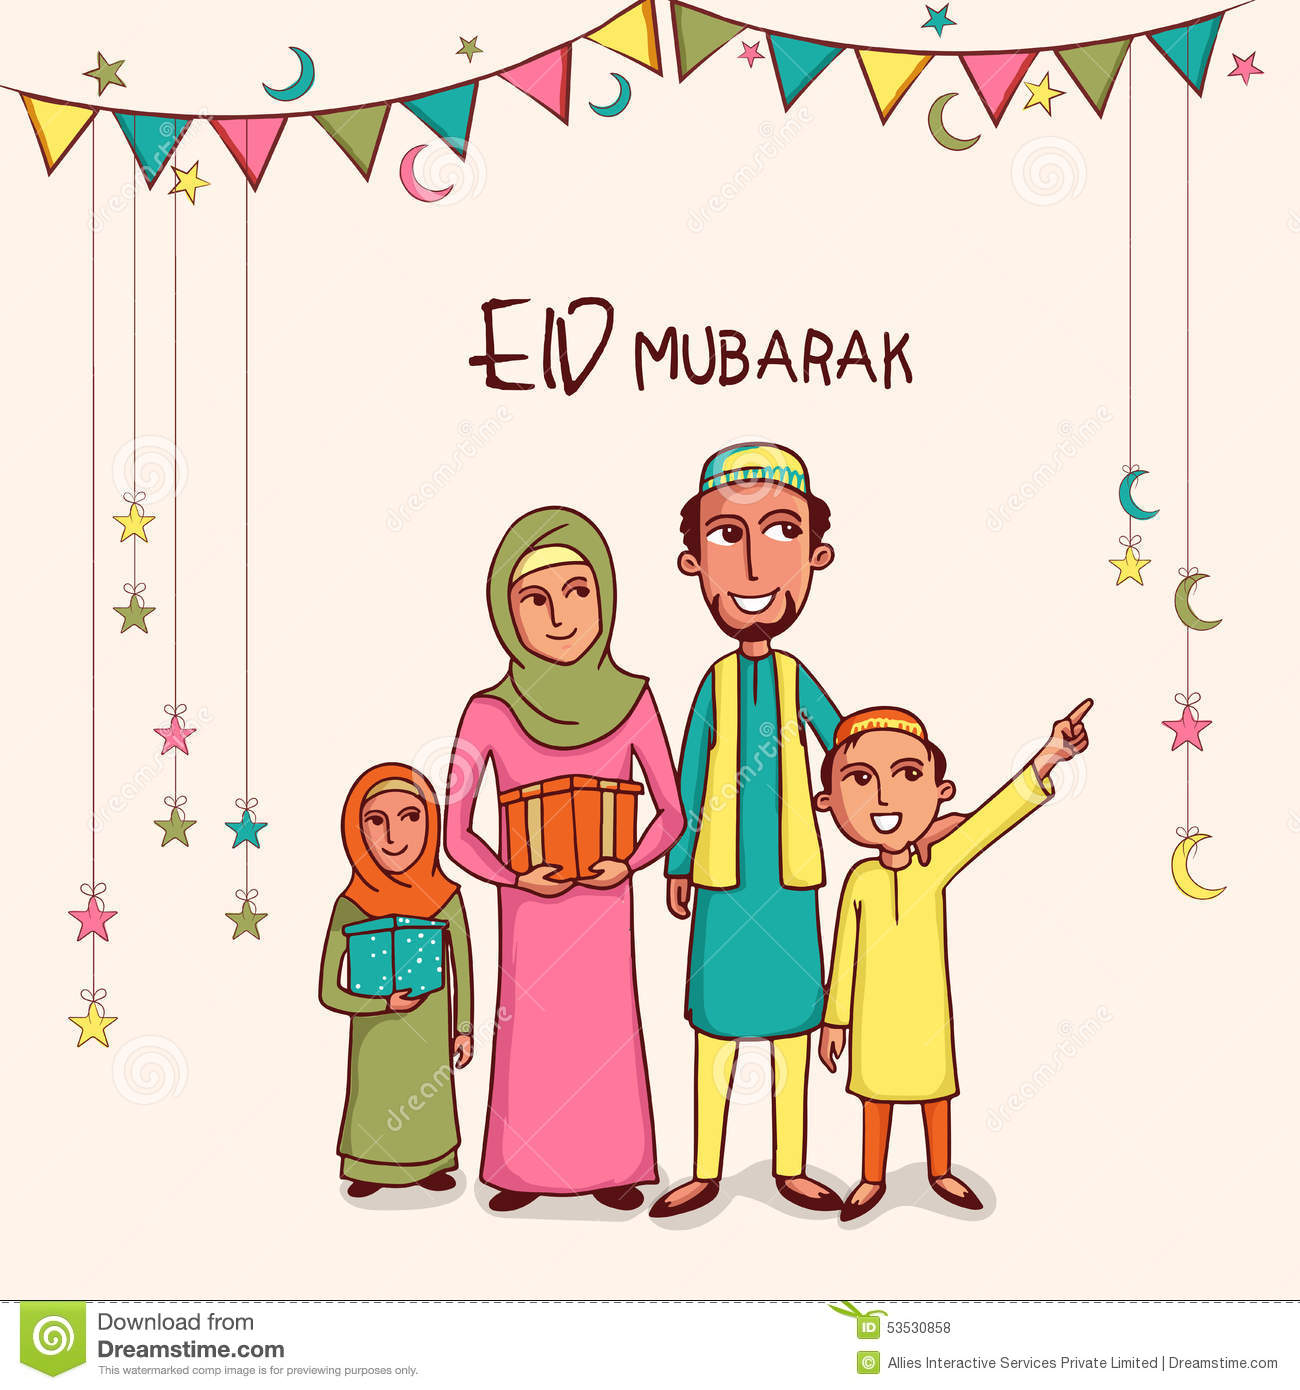 Eid celebration clipart.